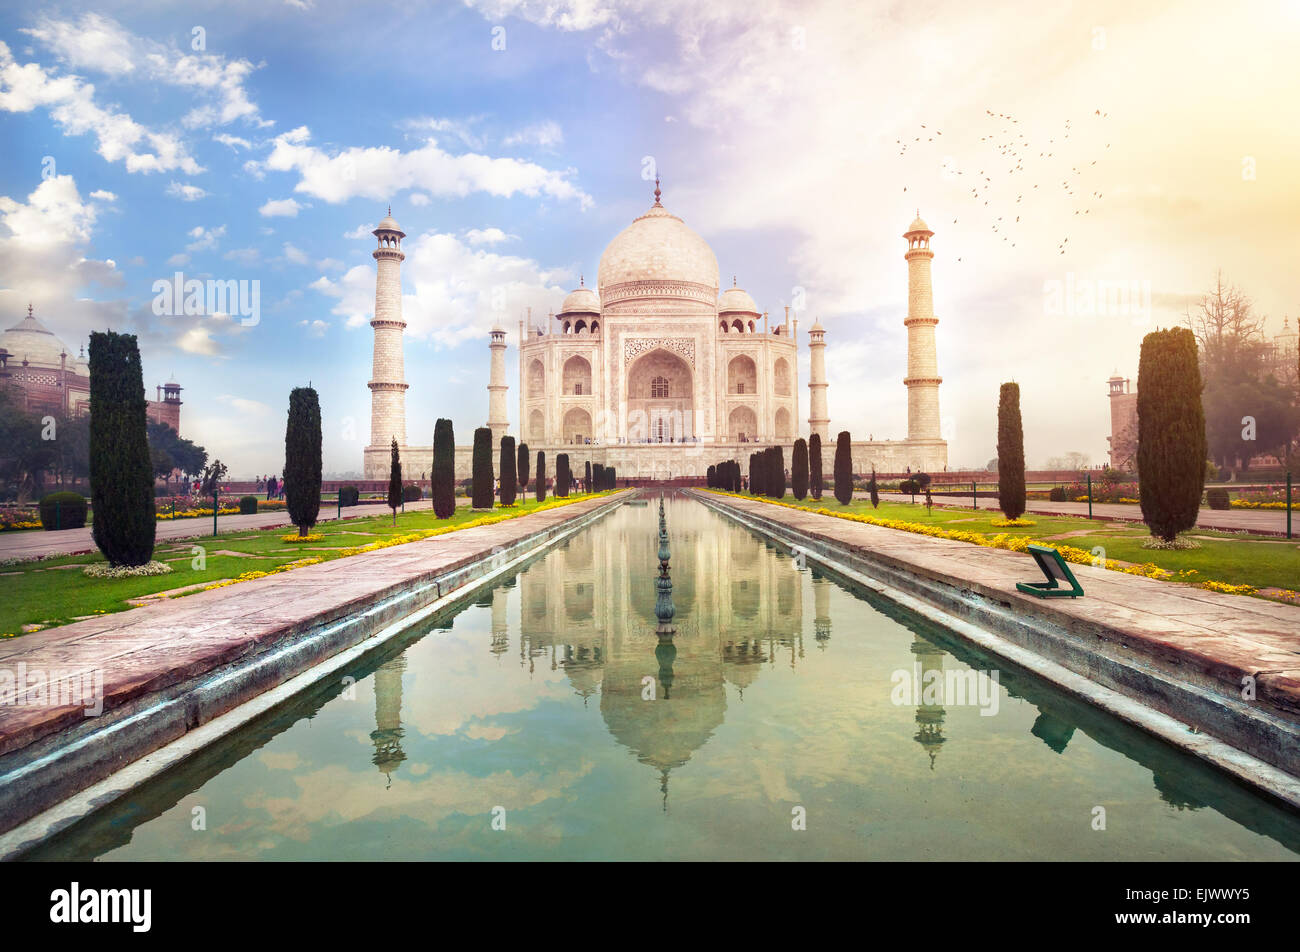 Taj Mahal tomb with reflection in the water at blue dramatic sky in Agra, Uttar Pradesh, India Stock Photo